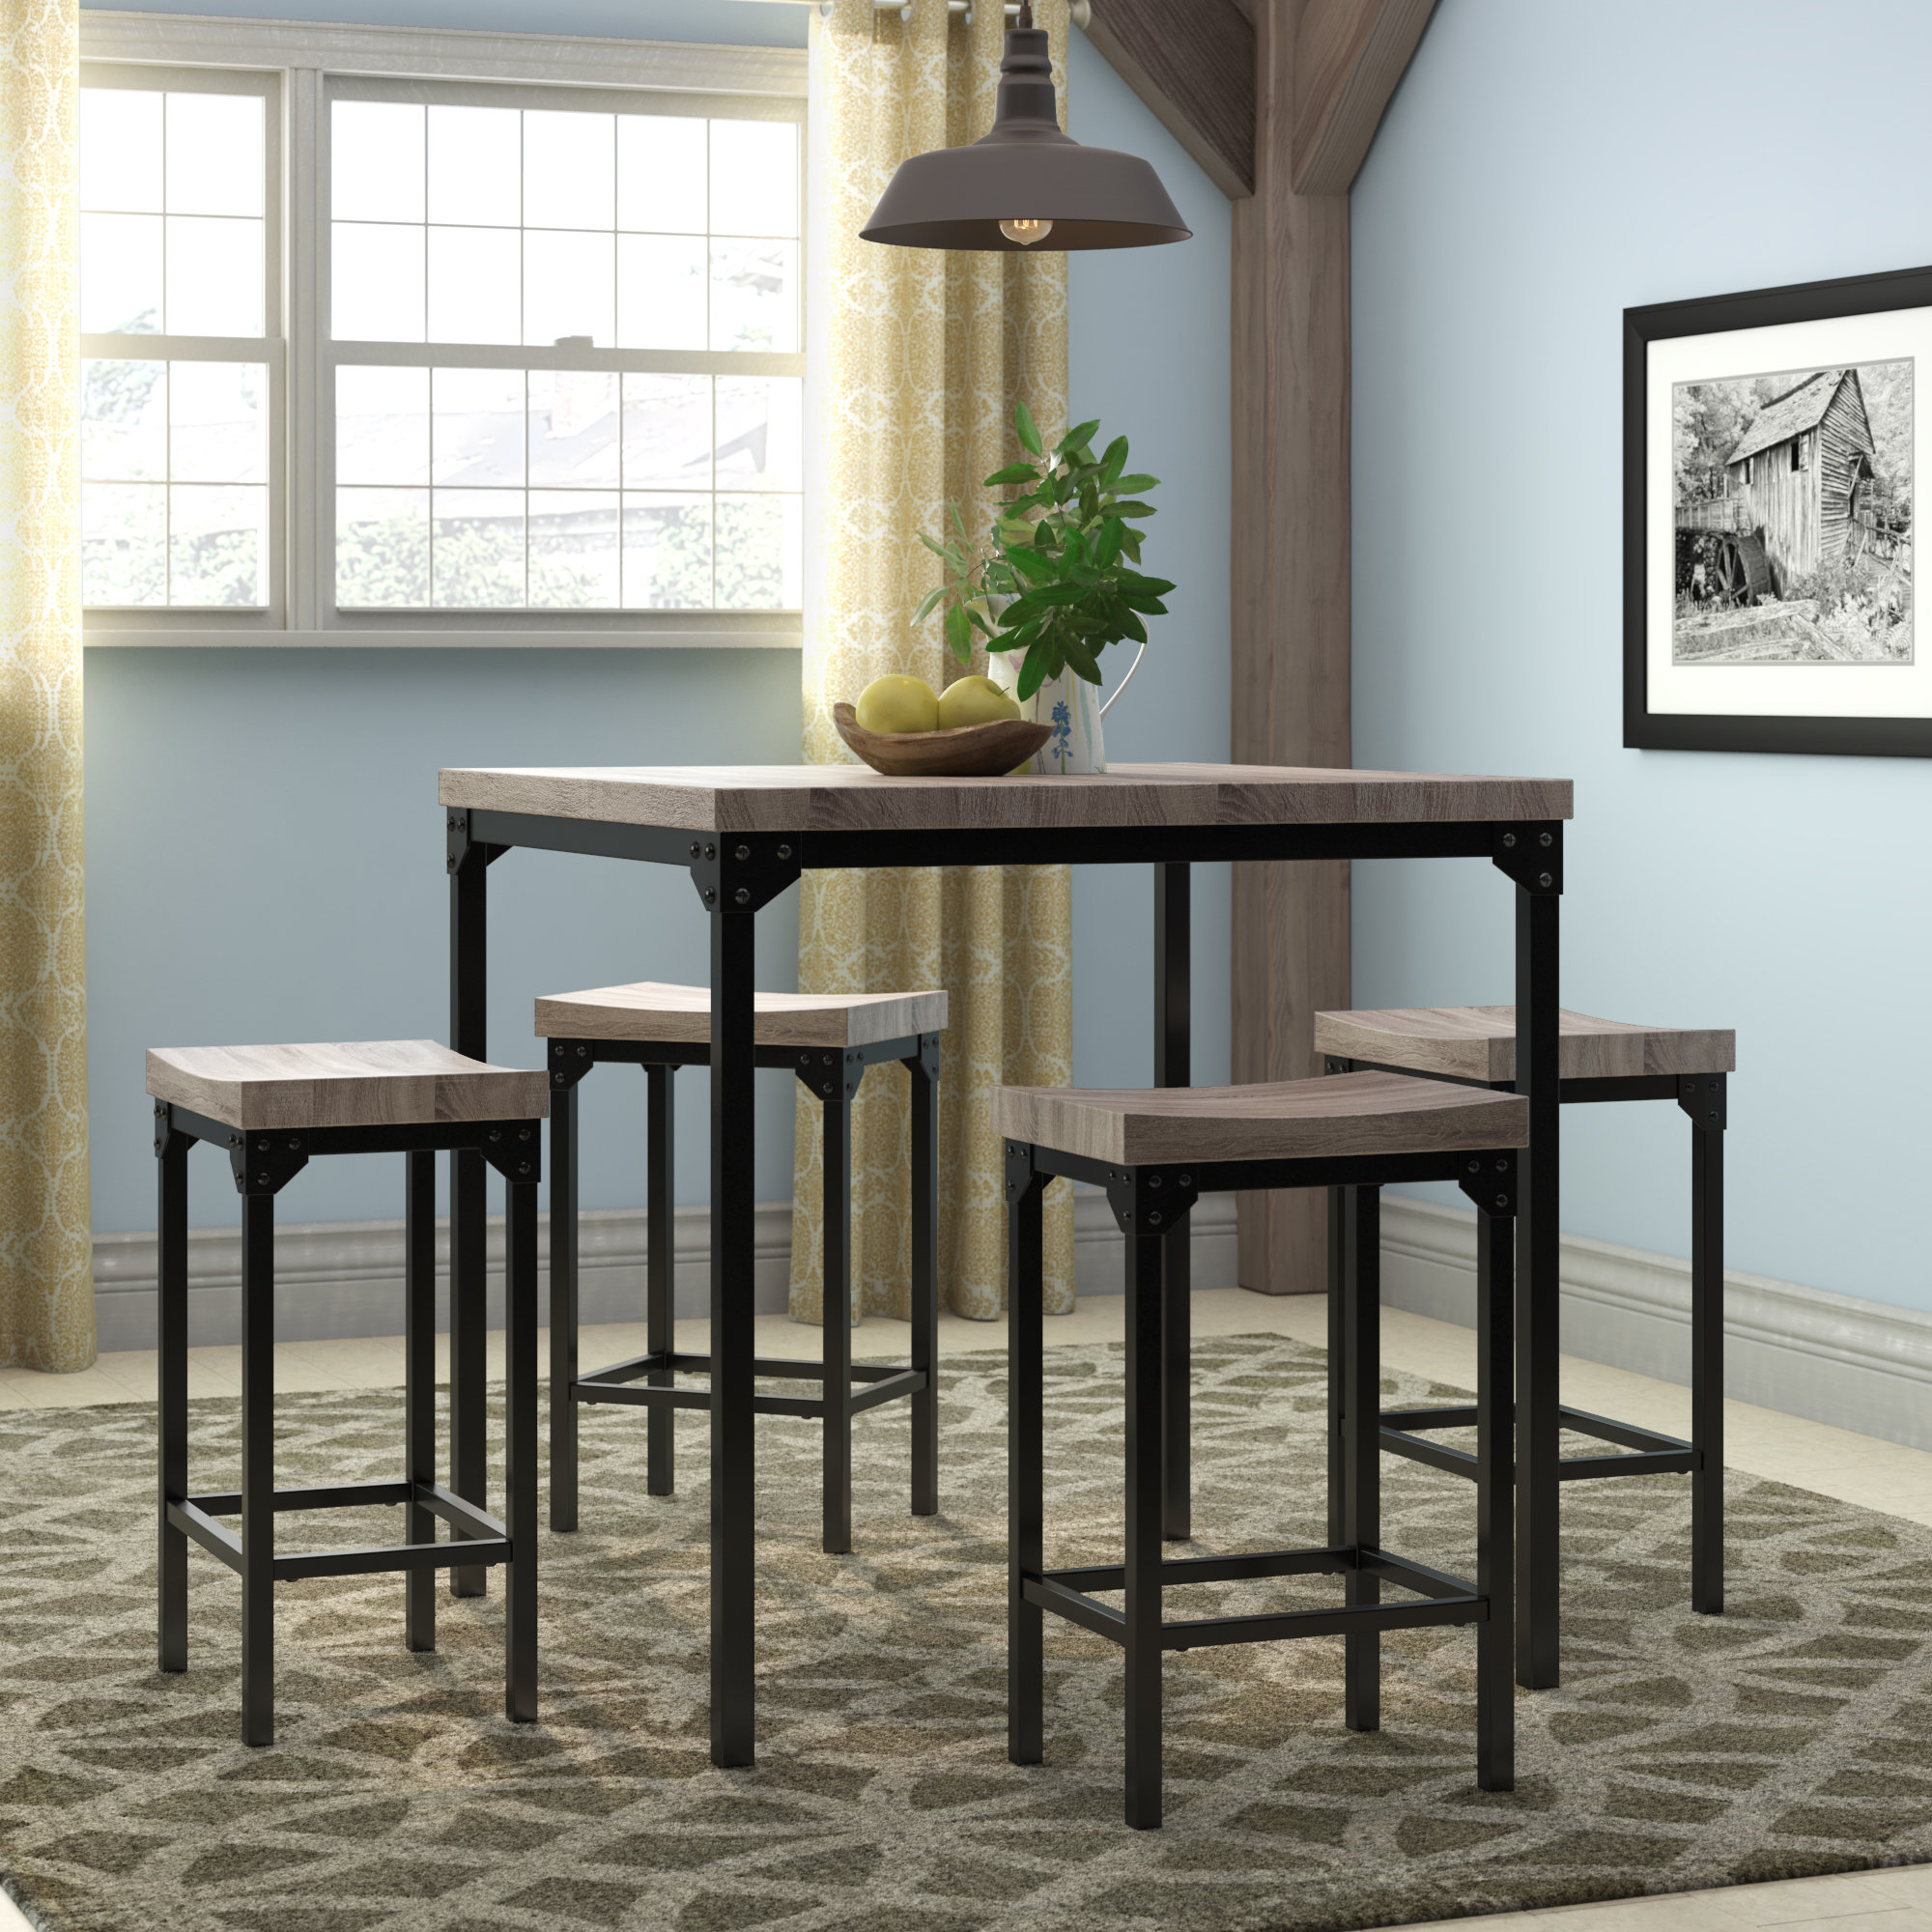 Wegner 5 Piece Counter Height Dining Set Regarding Current Denzel 5 Piece Counter Height Breakfast Nook Dining Sets (Image 19 of 20)